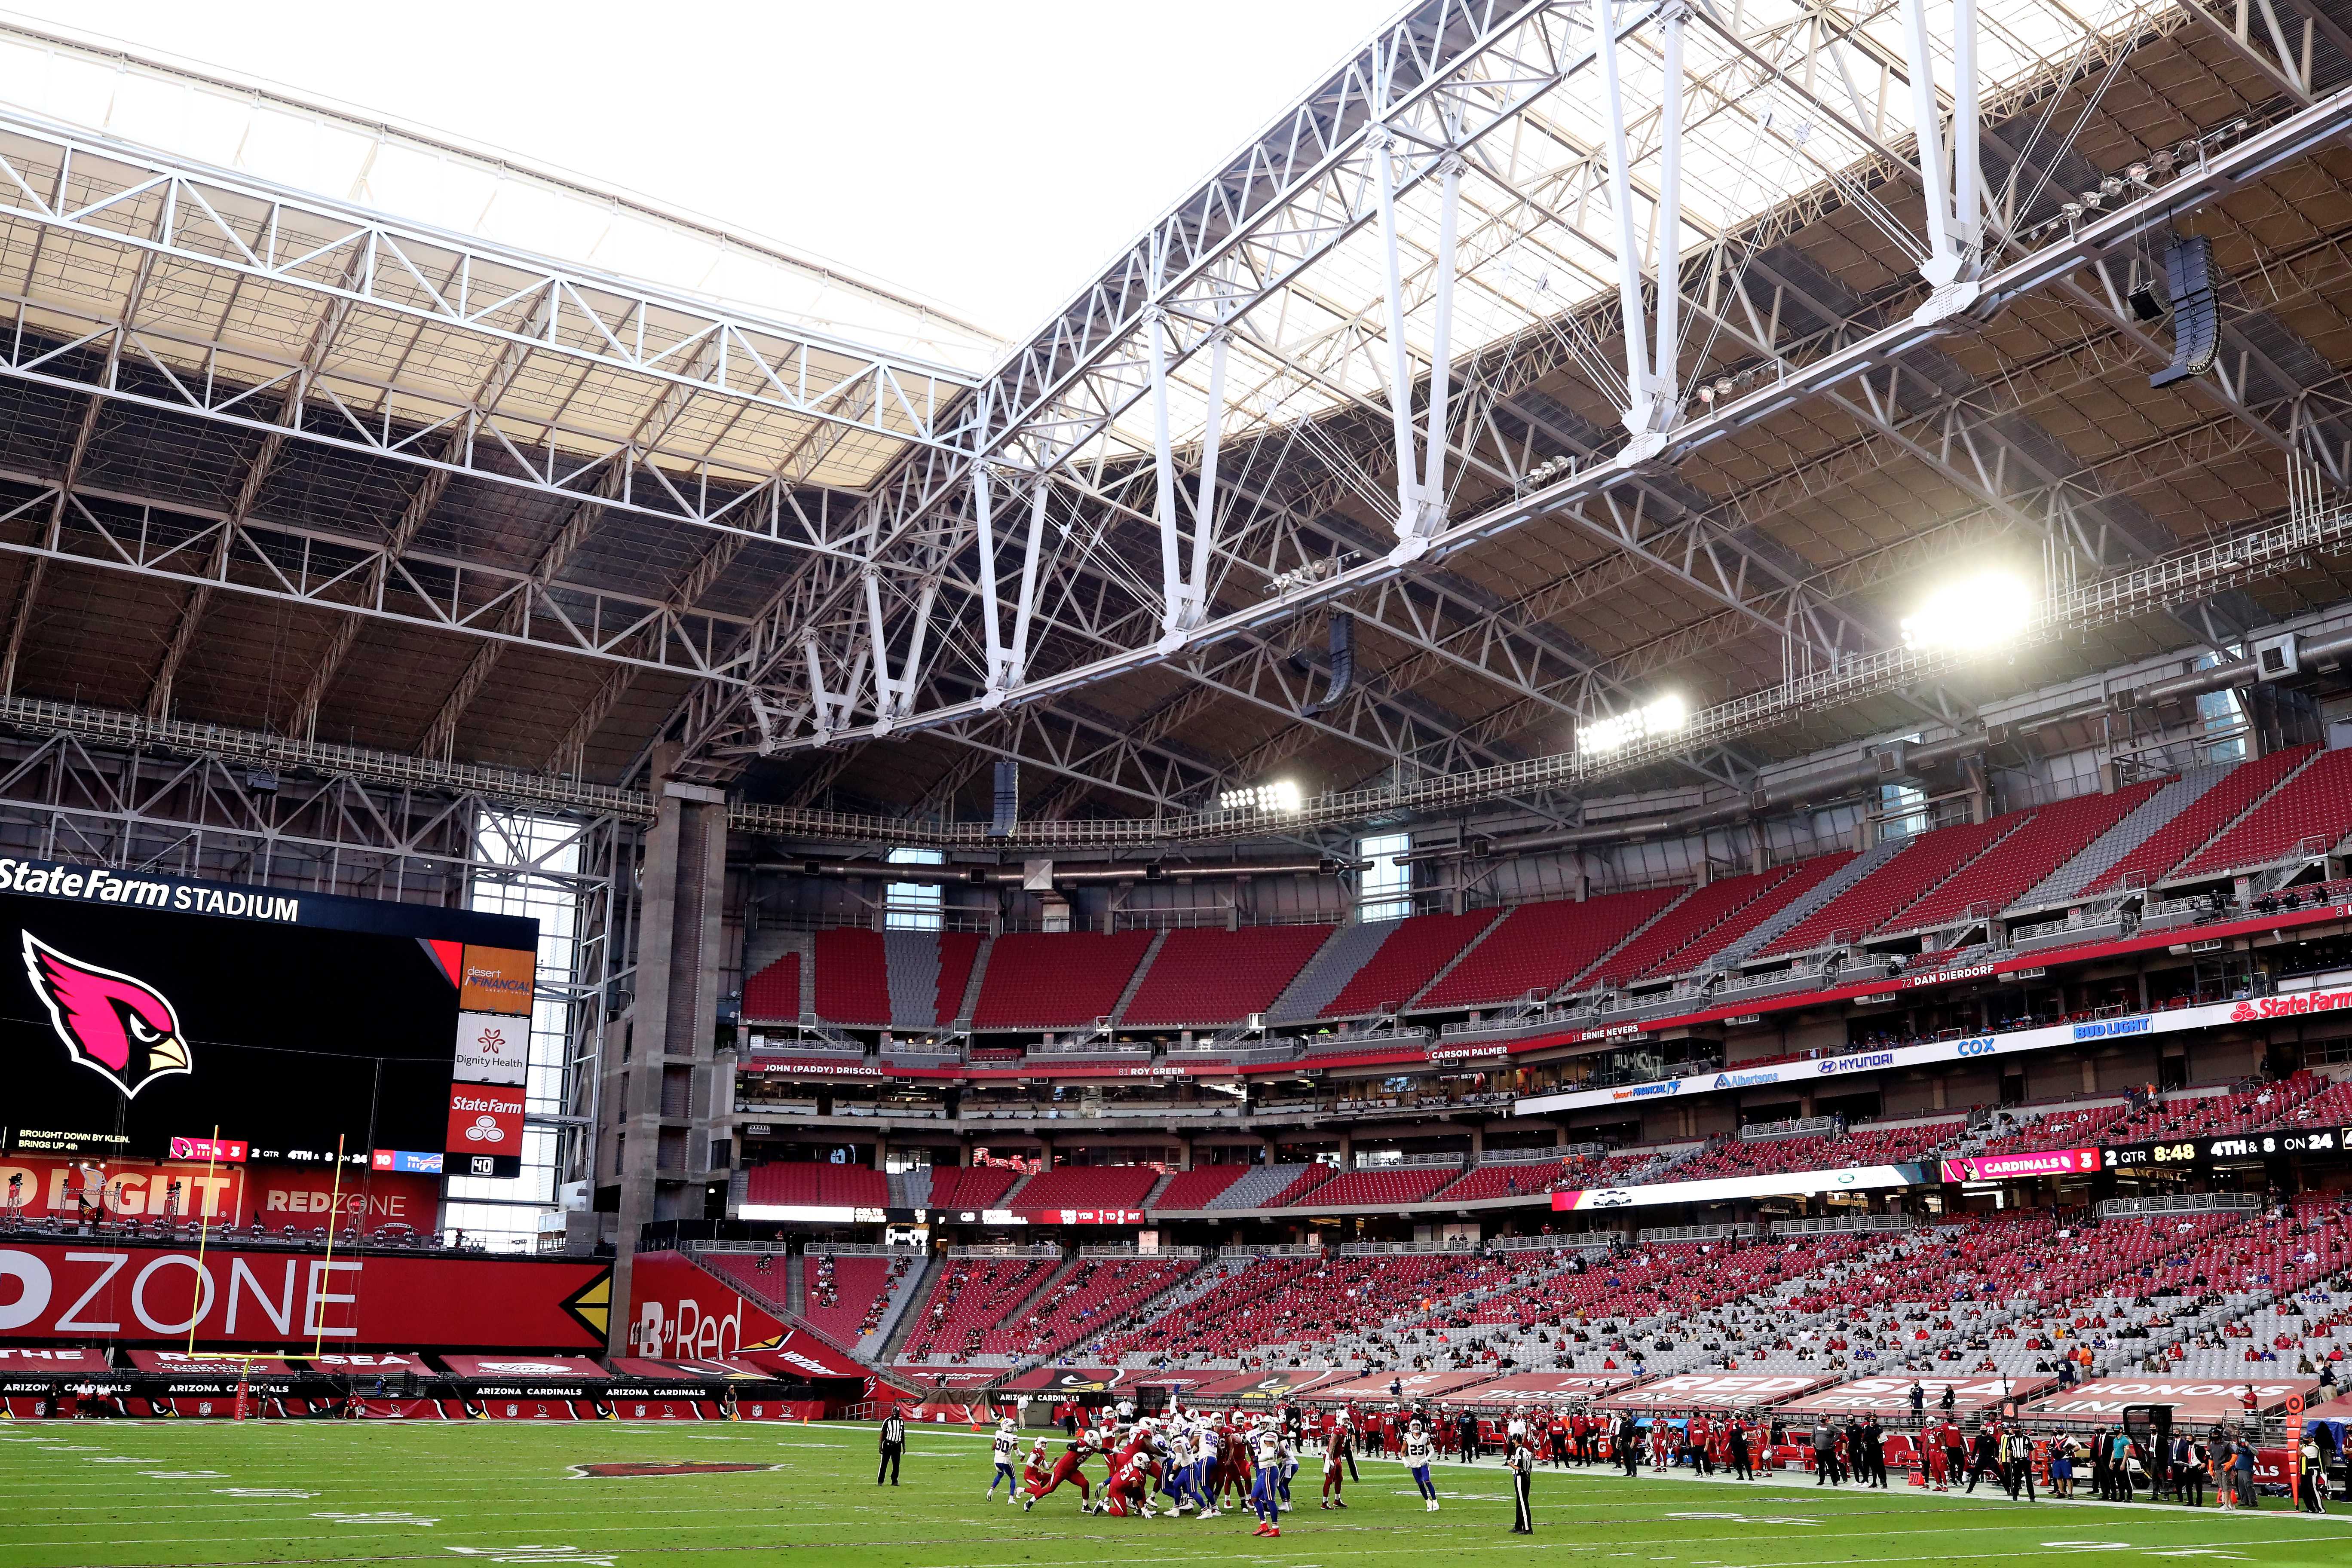 A general view of gameplay during the first half between the Buffalo Bills and the Arizona Cardinals at State Farm Stadium on November 15, 2020 in Glendale, Arizona.